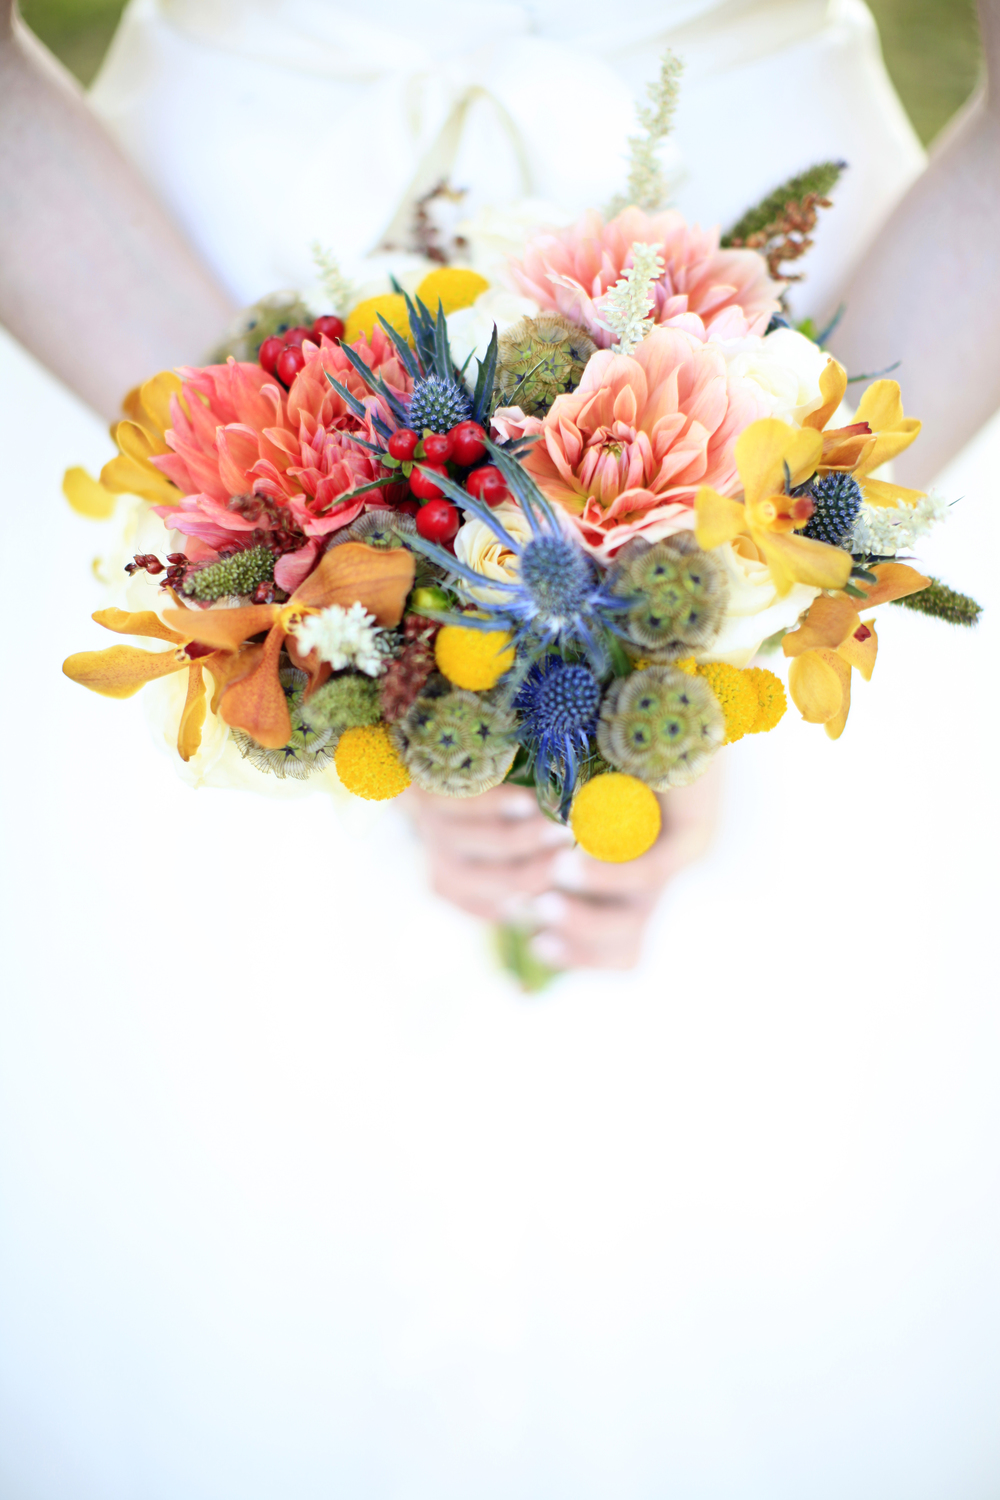 Fall Bridal bouquet by Floral Design by Lili, Vancouver Florist, B.C.